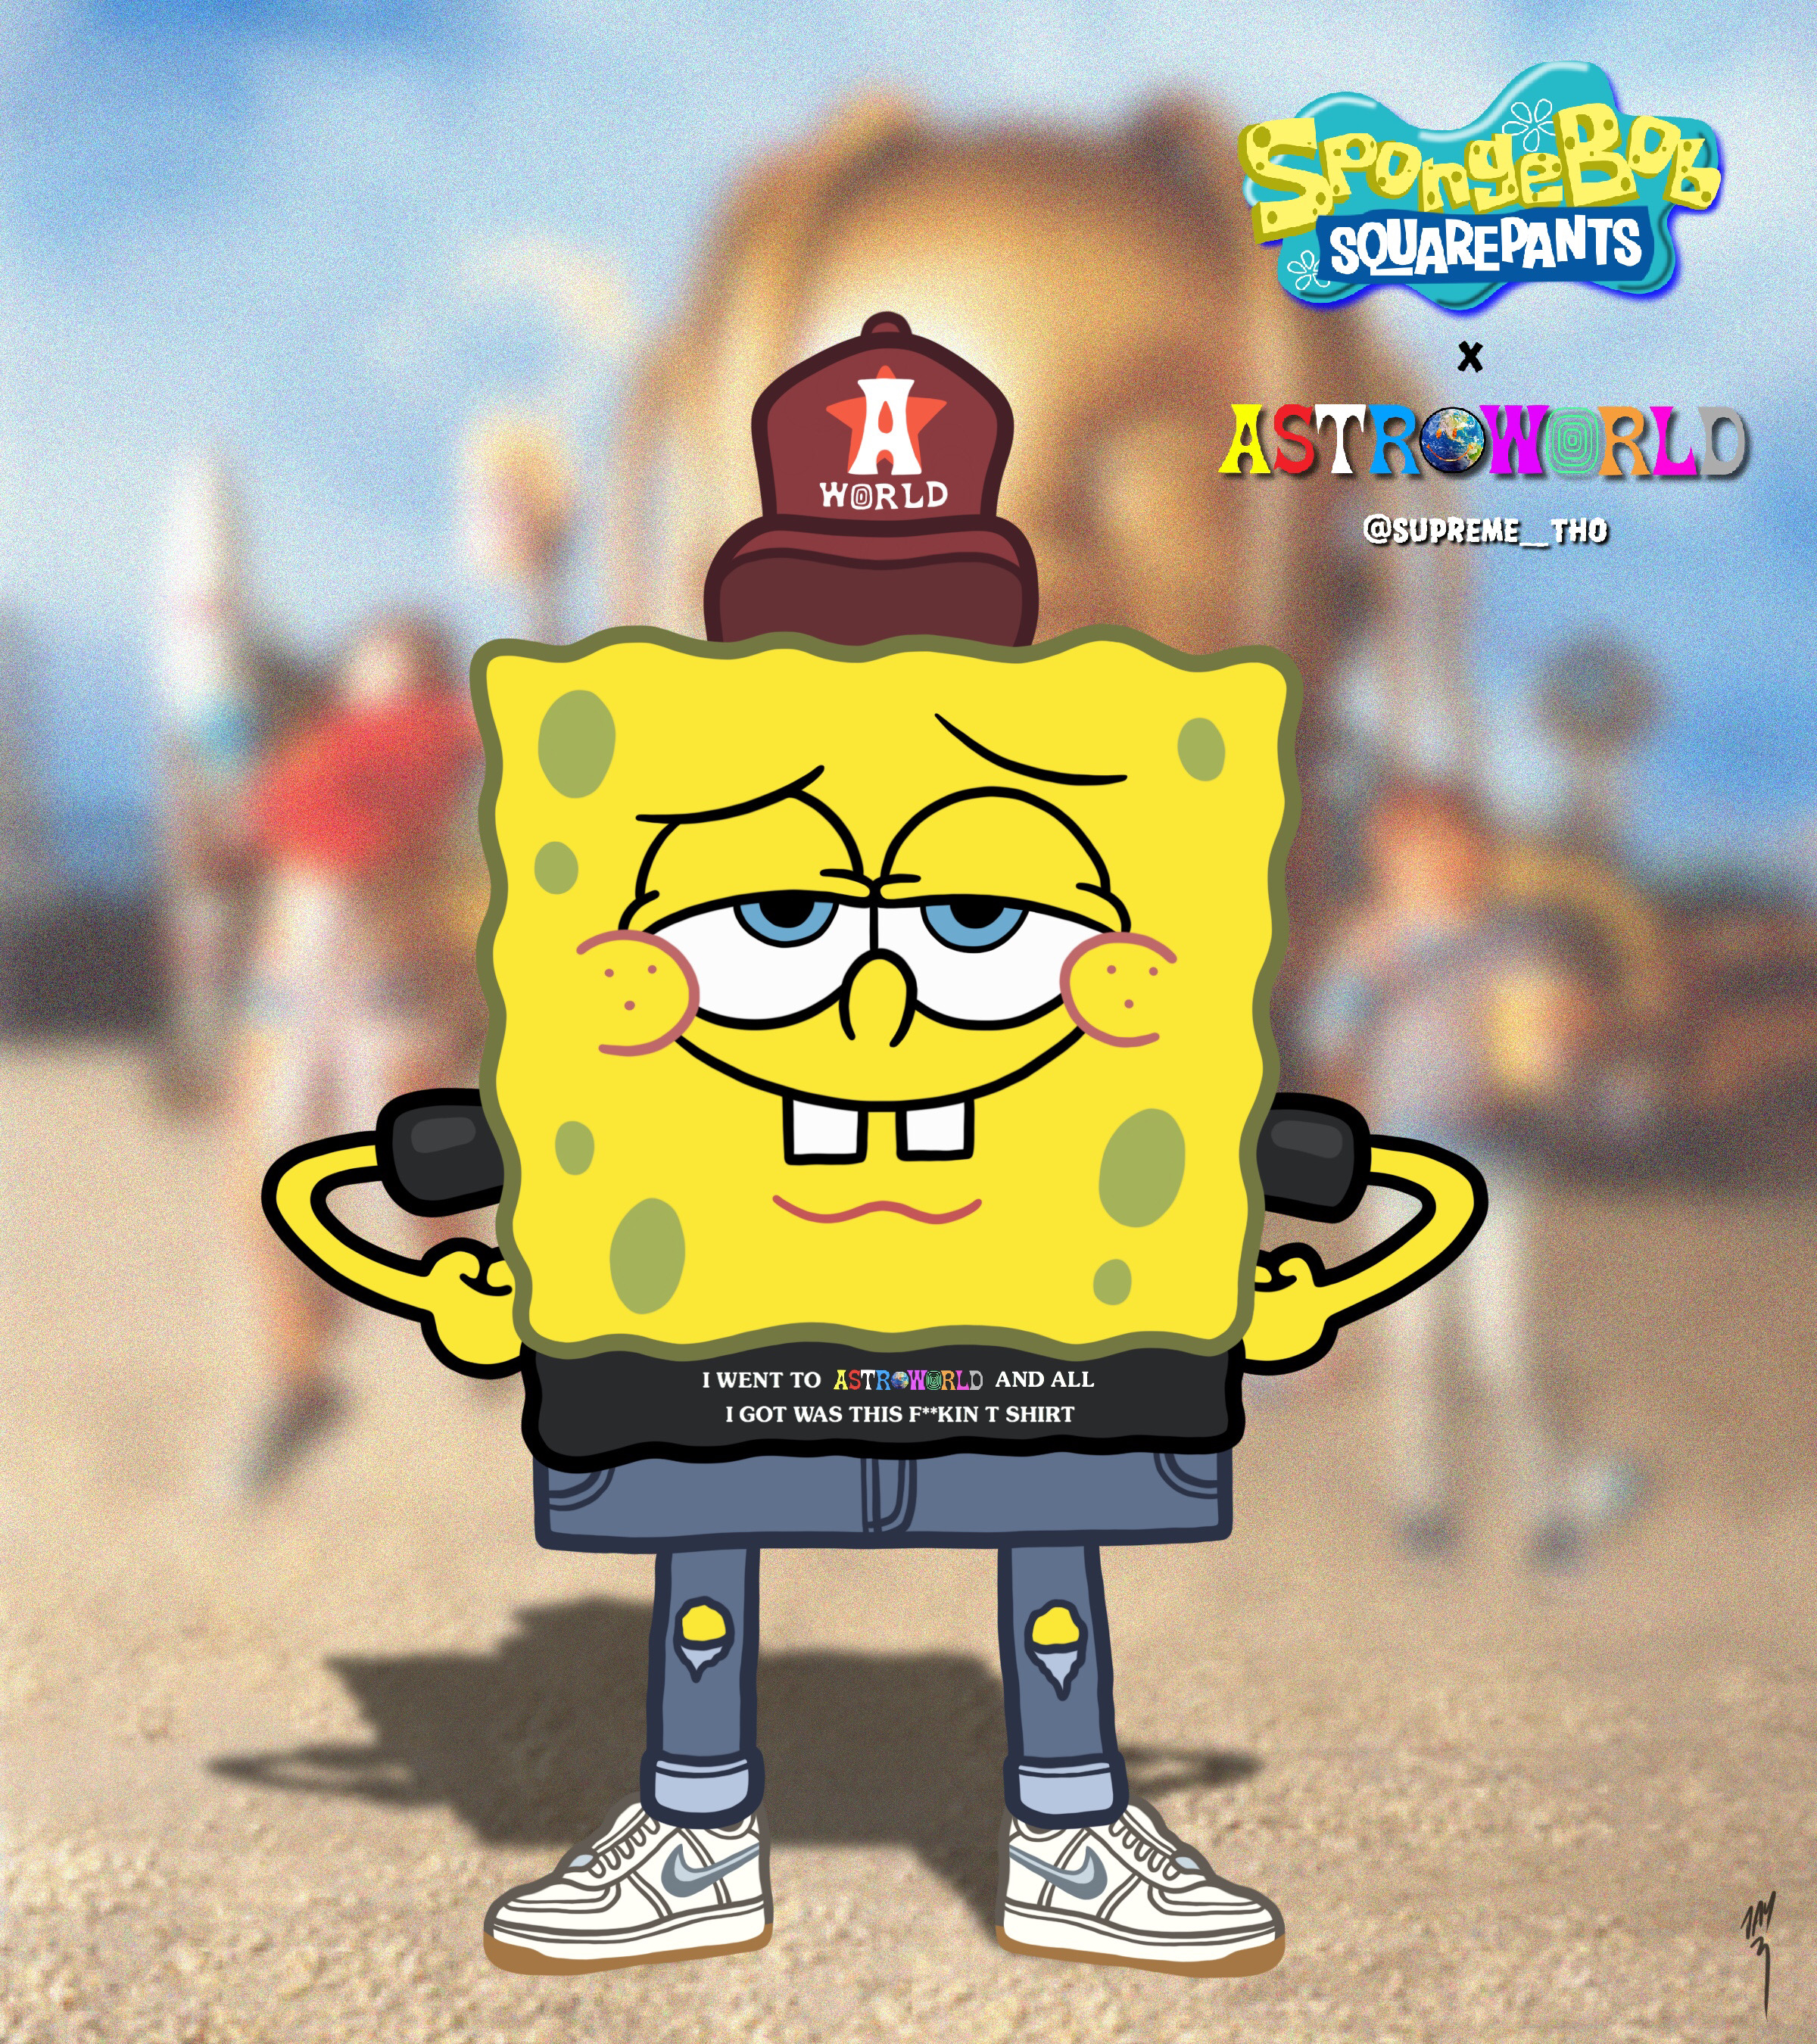 SPONGEBOB x ASTROWORLD